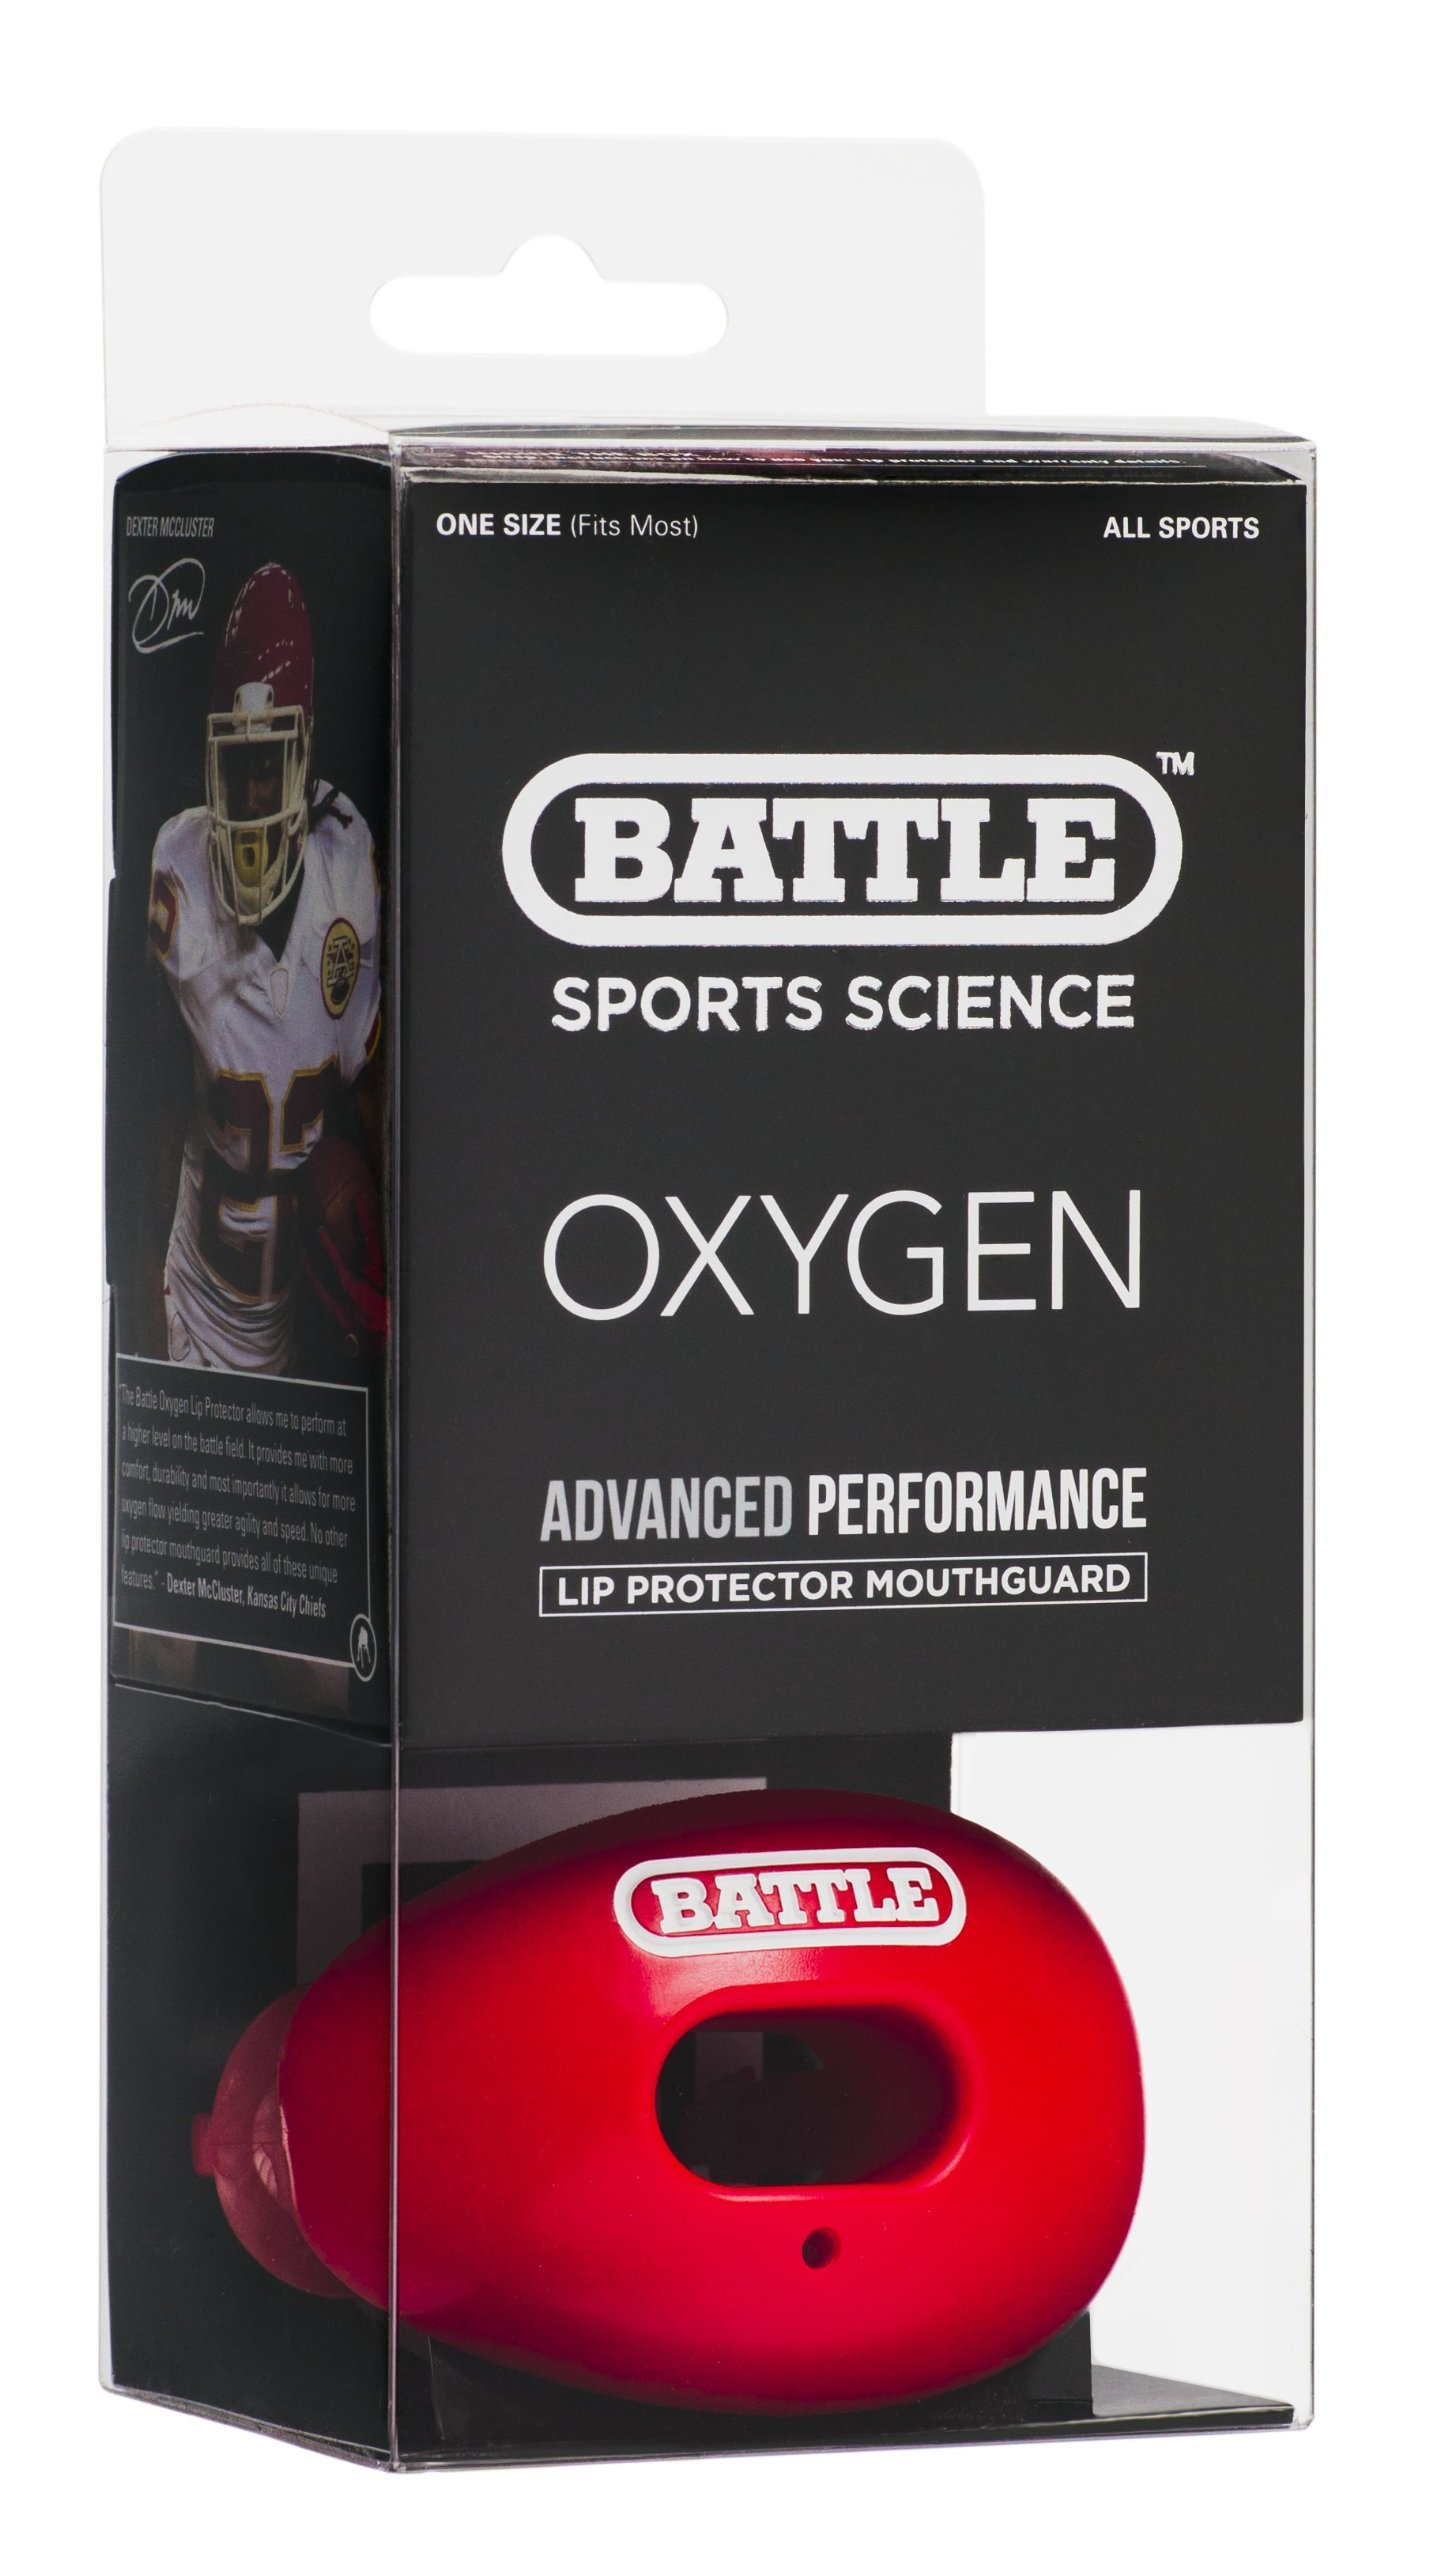 Battle Oxygen Lip Protector Mouthguard, Red by Battle